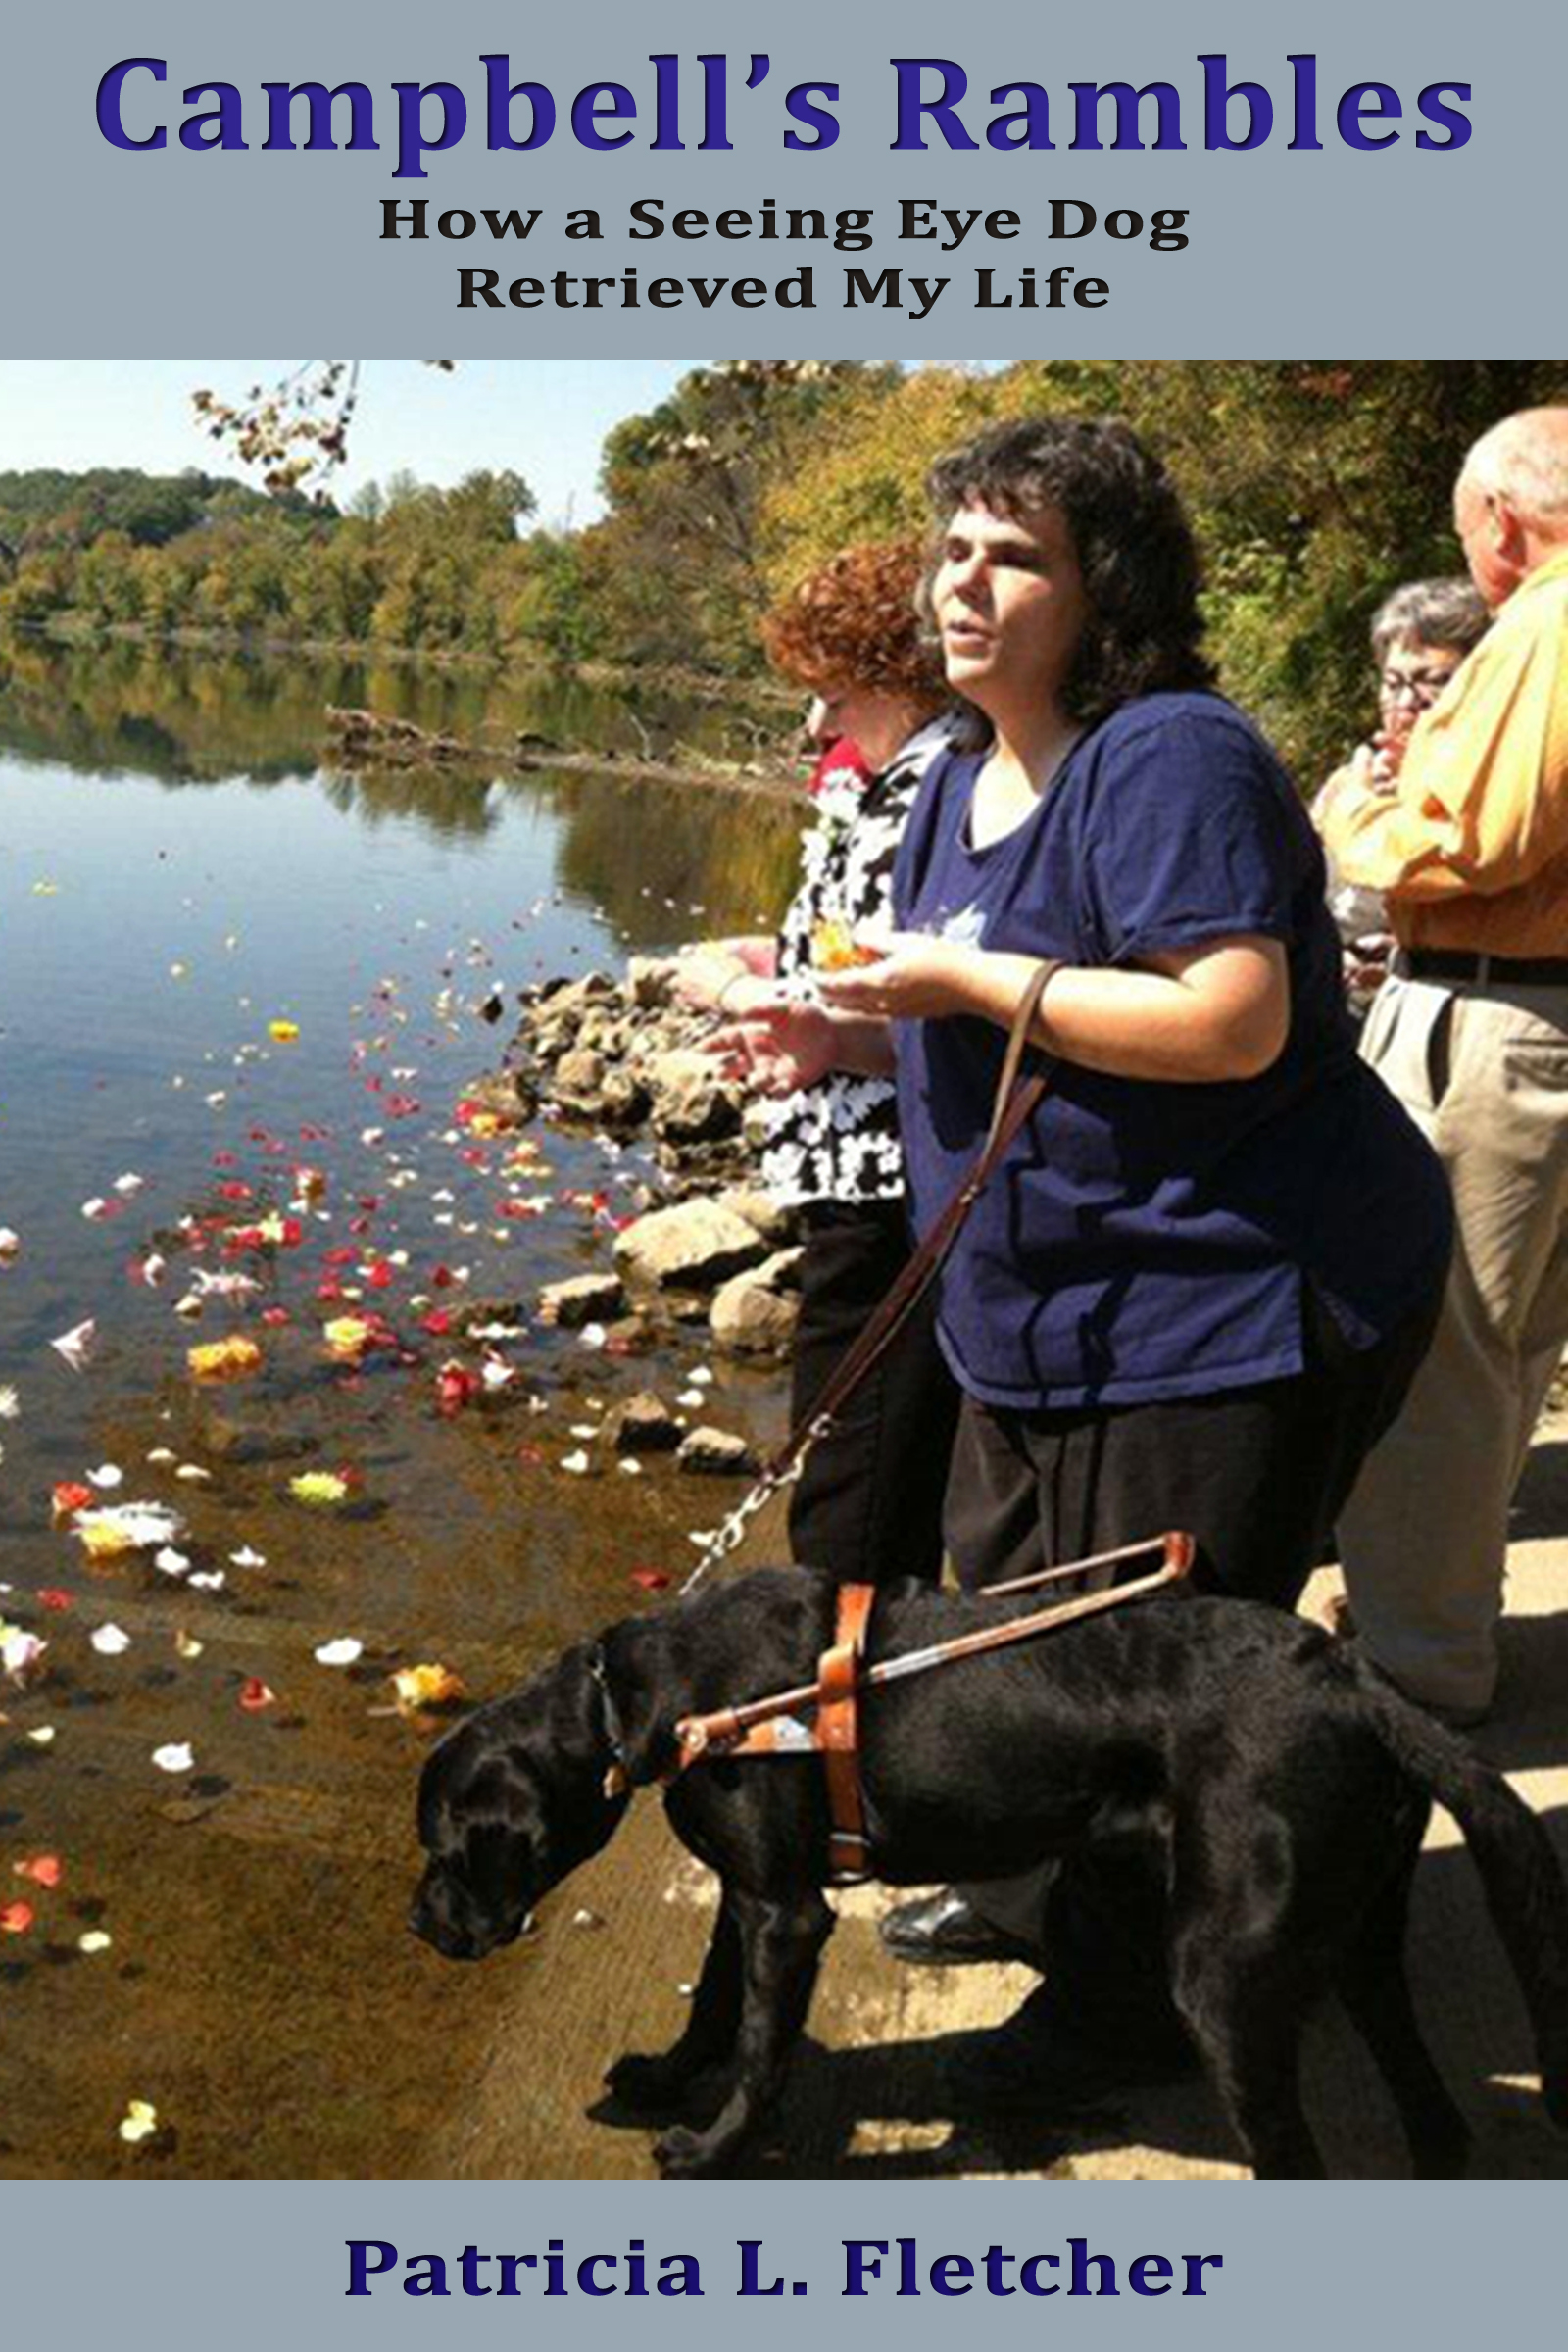 Excerpt From Campbell's Rambles: How a Seeing Eye Dog Retrieved My Life Chapter 26 The Last Day (Q&A)